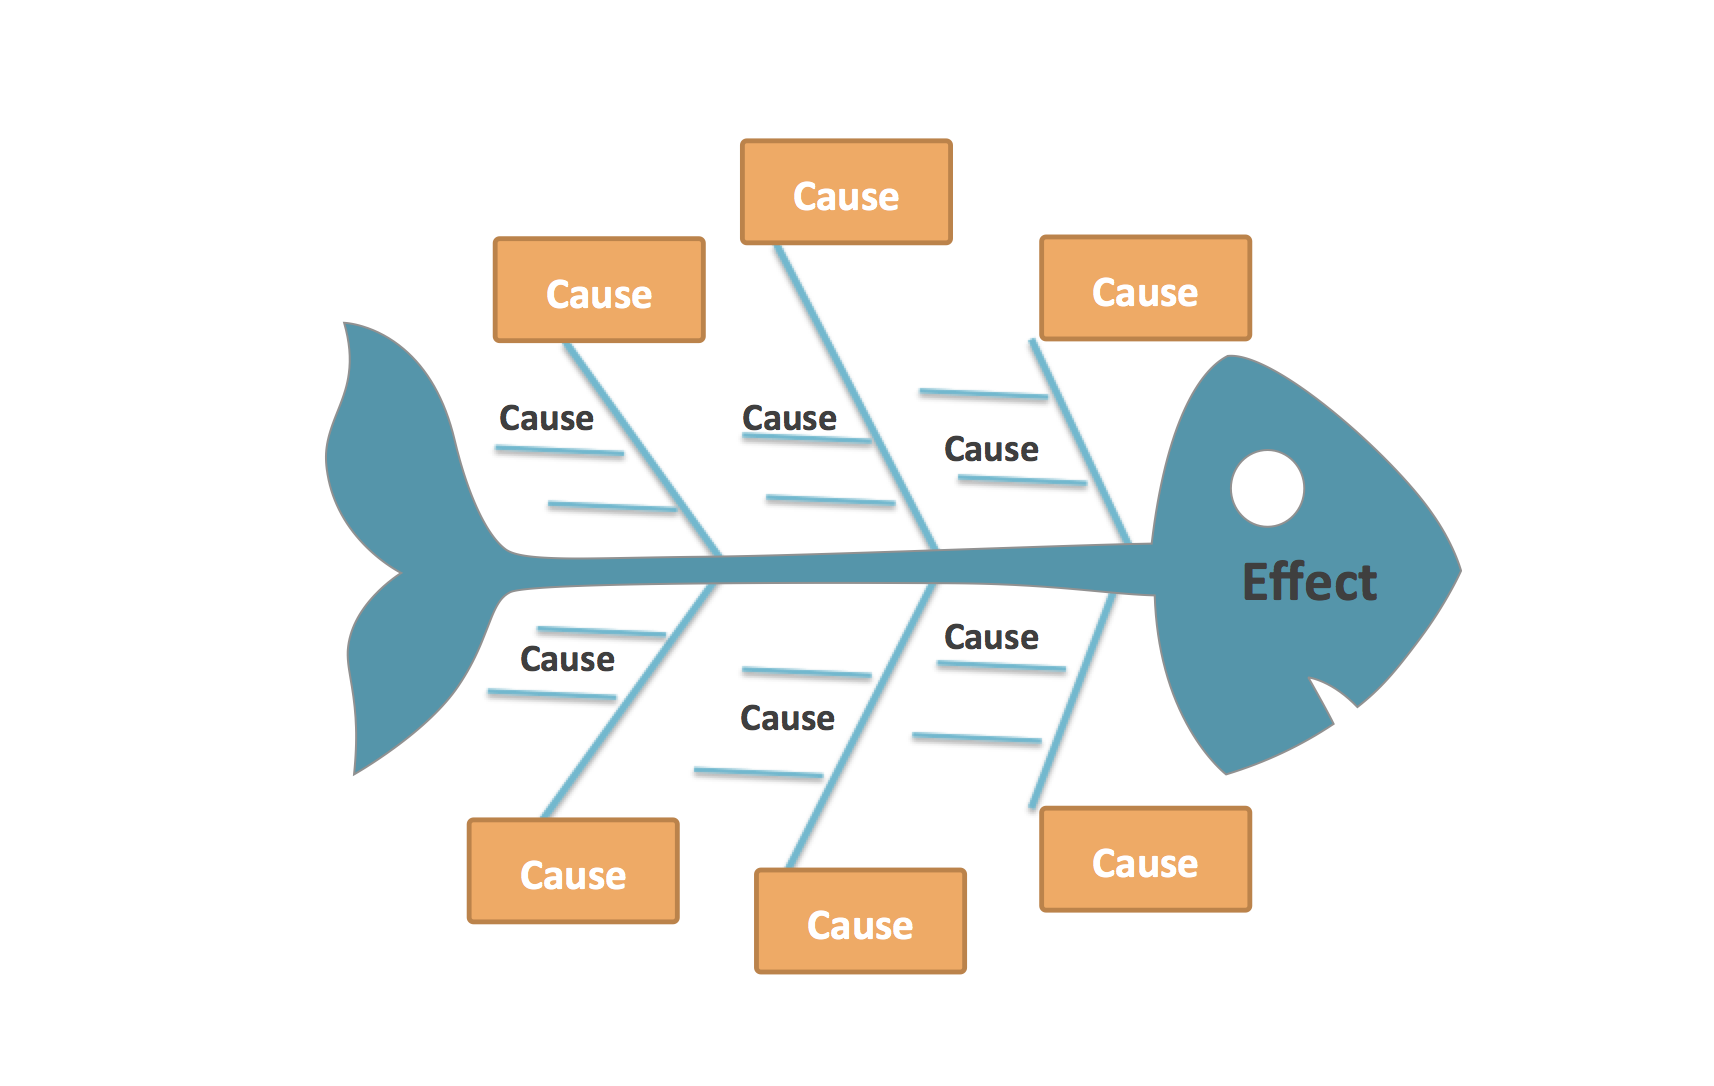 If you need to understand what is causing a problem then a Fishbone diagram is for you!